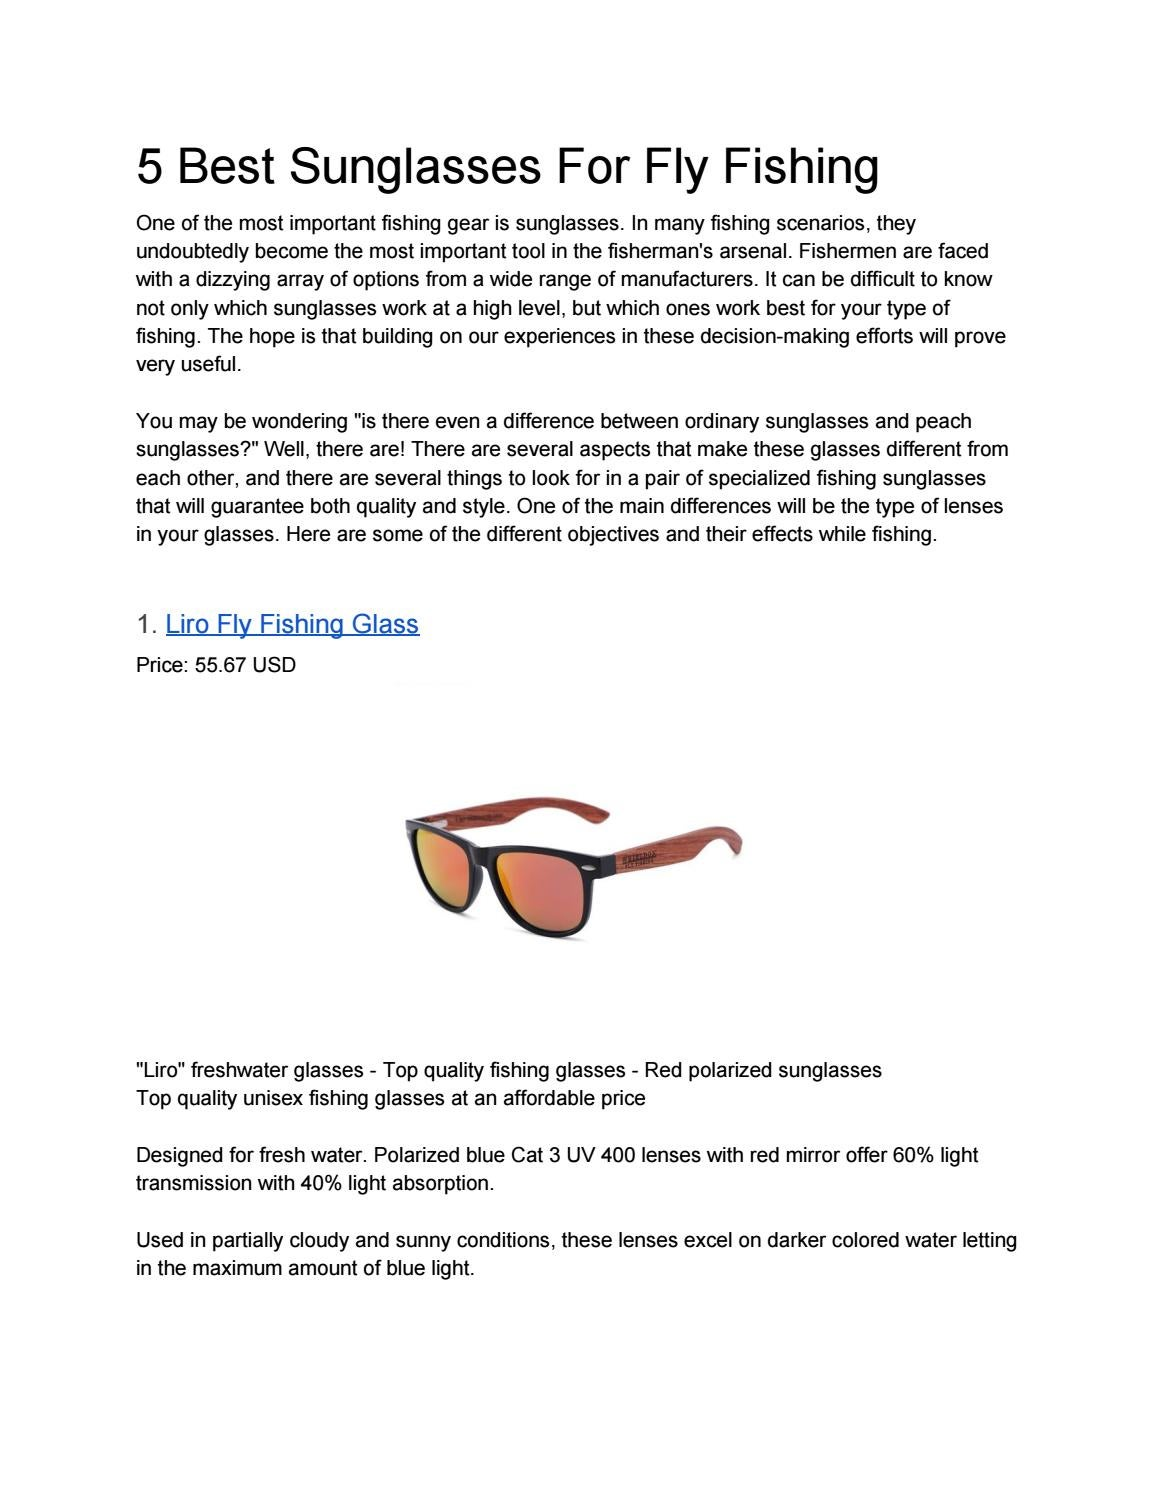 5 Best Sunglasses For Fly Fishing By Barry Allen Issuu